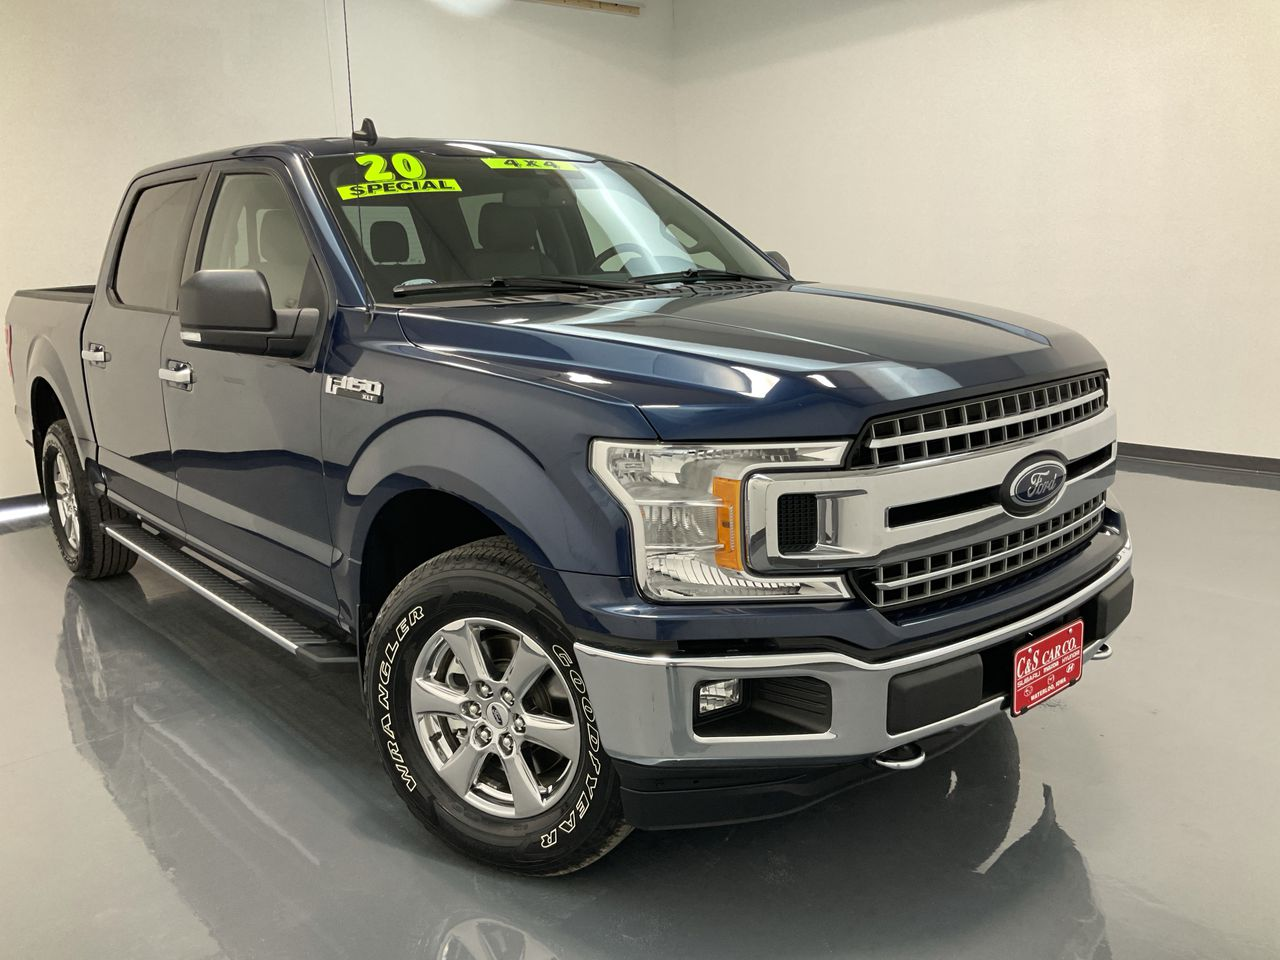 2020 Ford F-150 Supercrew 4WD 157  - 16499  - C & S Car Company